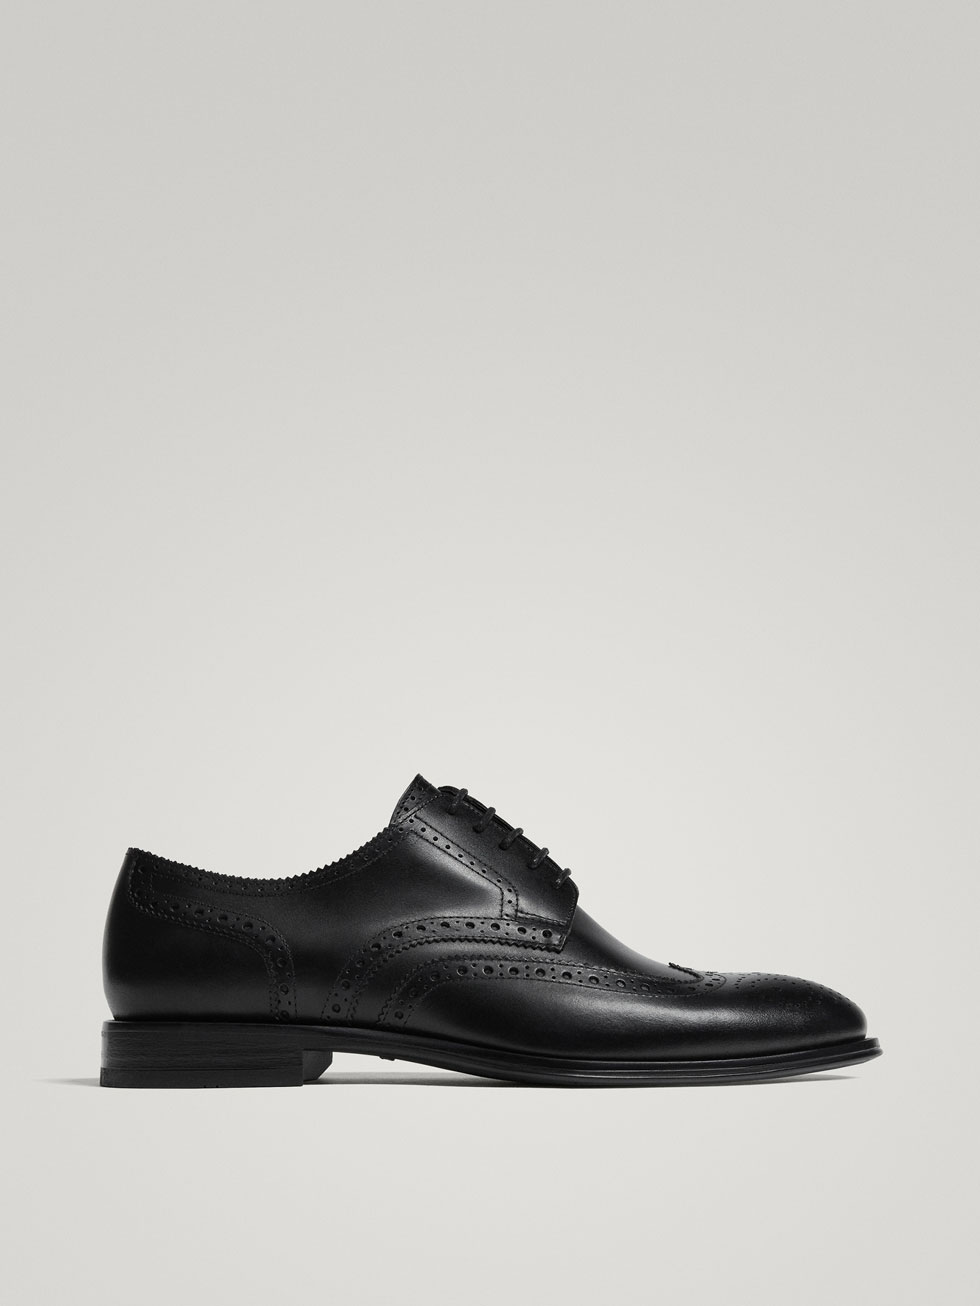 Black Leather Full Brogues by Massimo Dutti